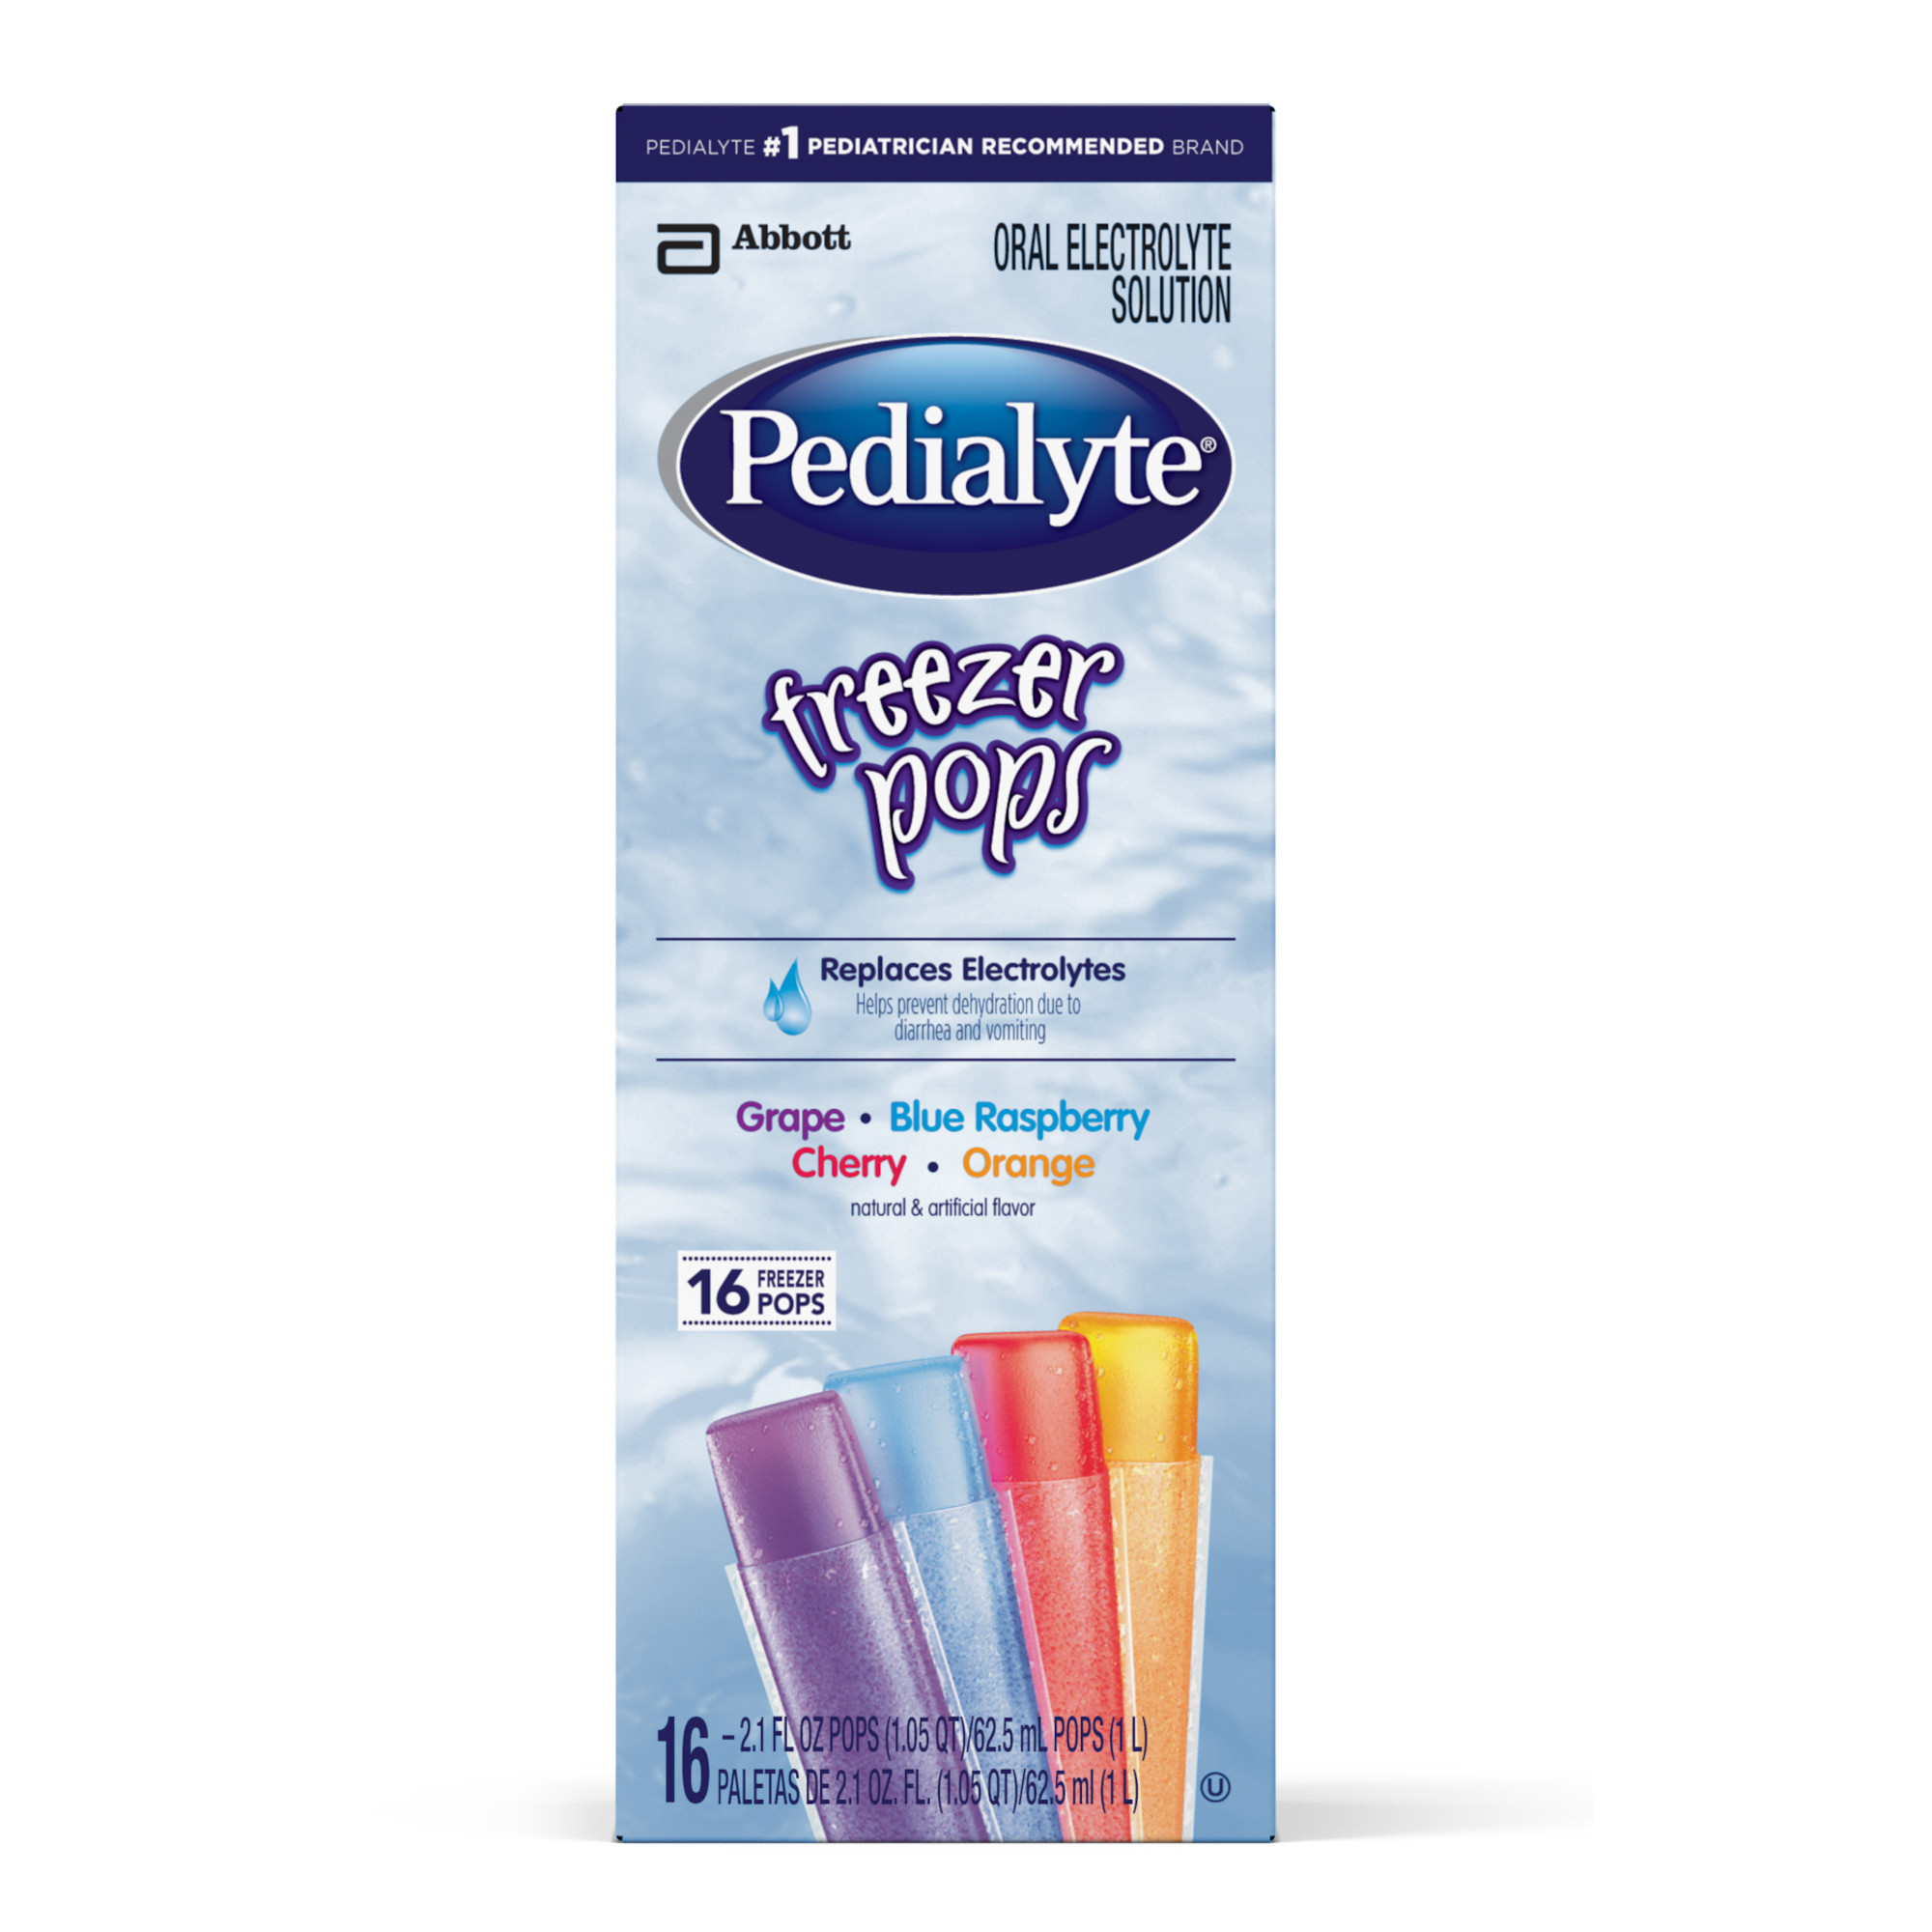 Pedialyte Electrolyte Solution Freezer Pops, 2.1 oz (4, 16-count, Packs) (Does not ship frozen)